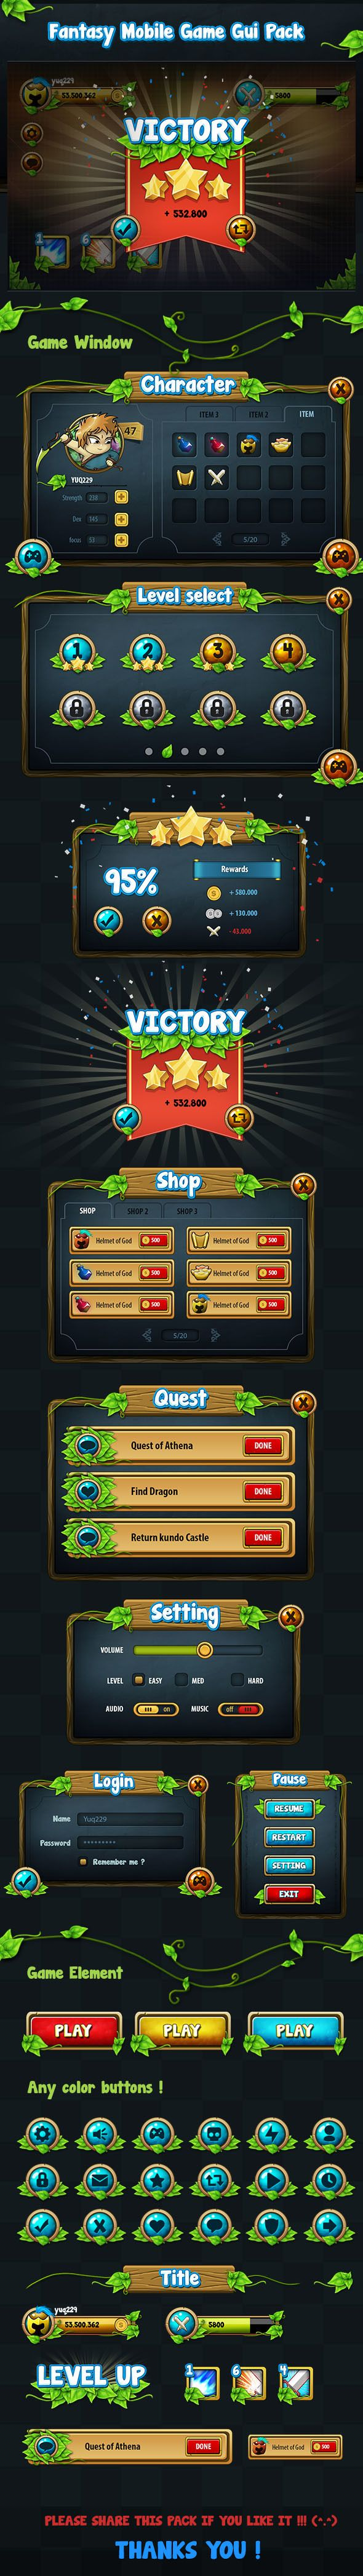 Fantasy Mobile Game Gui Pack 04 by Ryan Do, via Behance